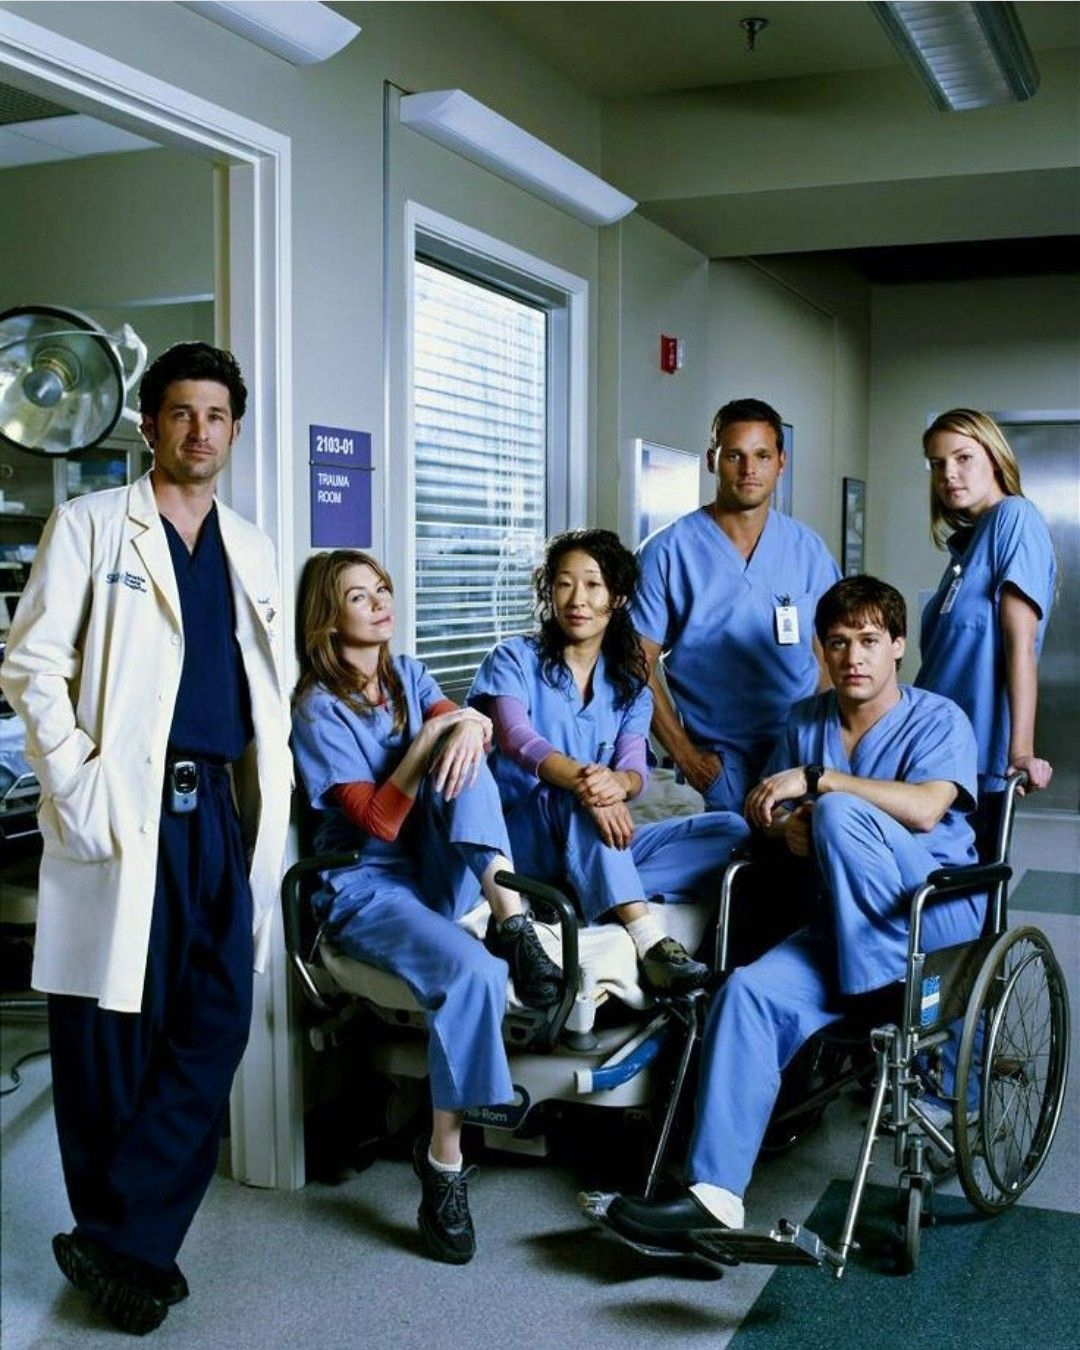 Grey's Anatomy Photoshoot | Grey's Anatomy | Pinterest ...